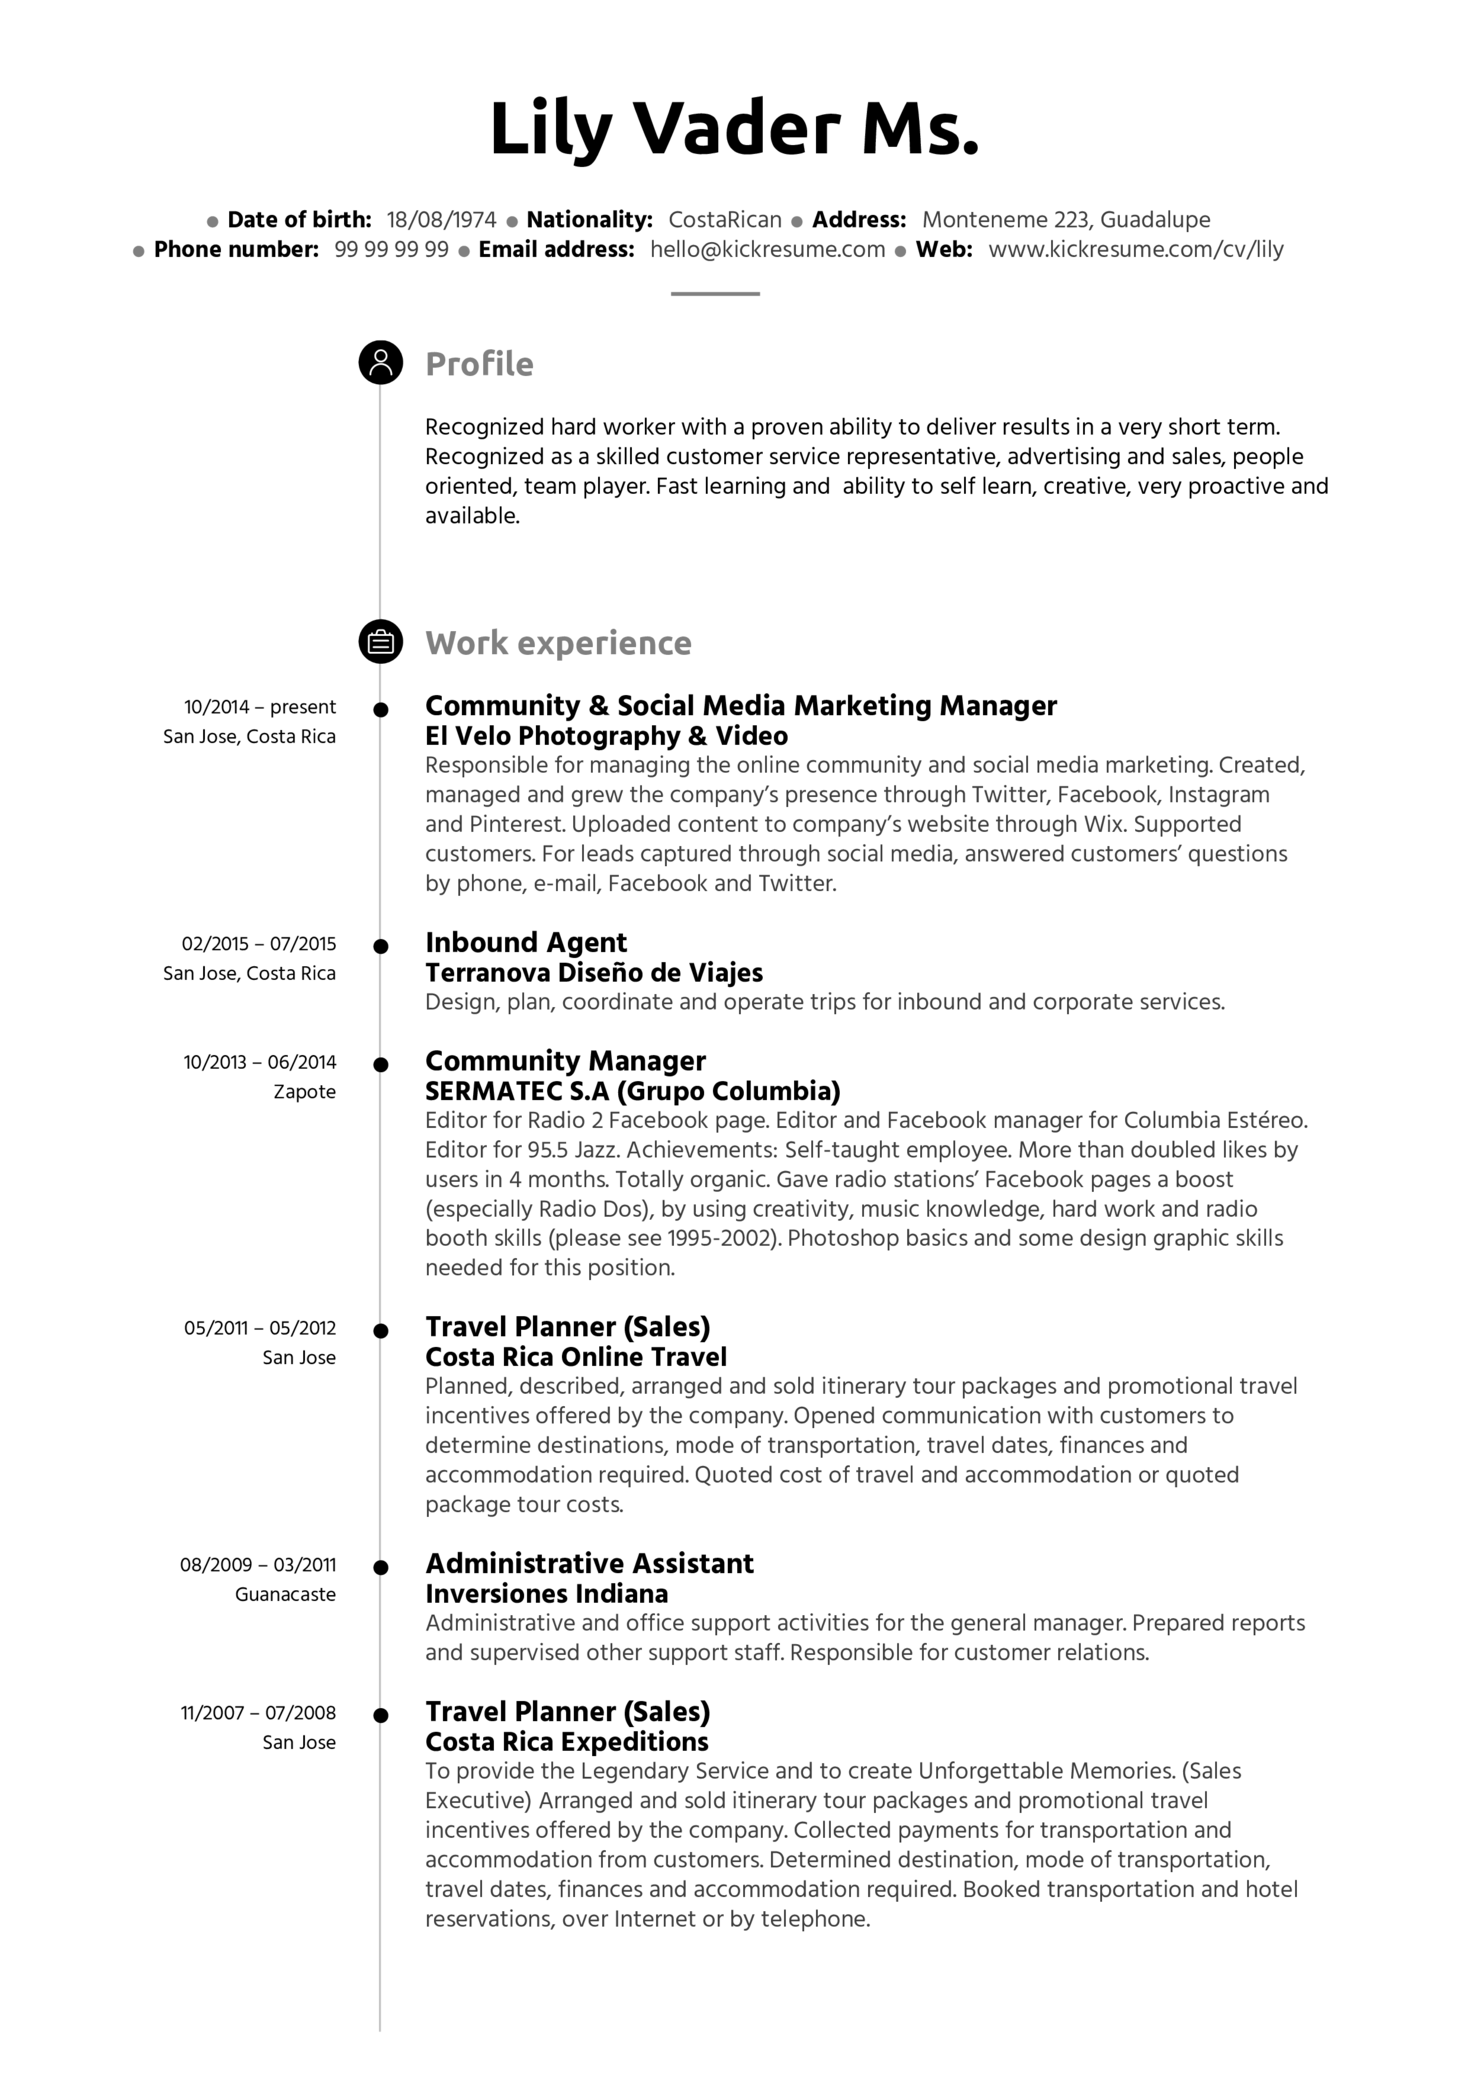 Administrative Assistant resume example | Resume samples | Career ...